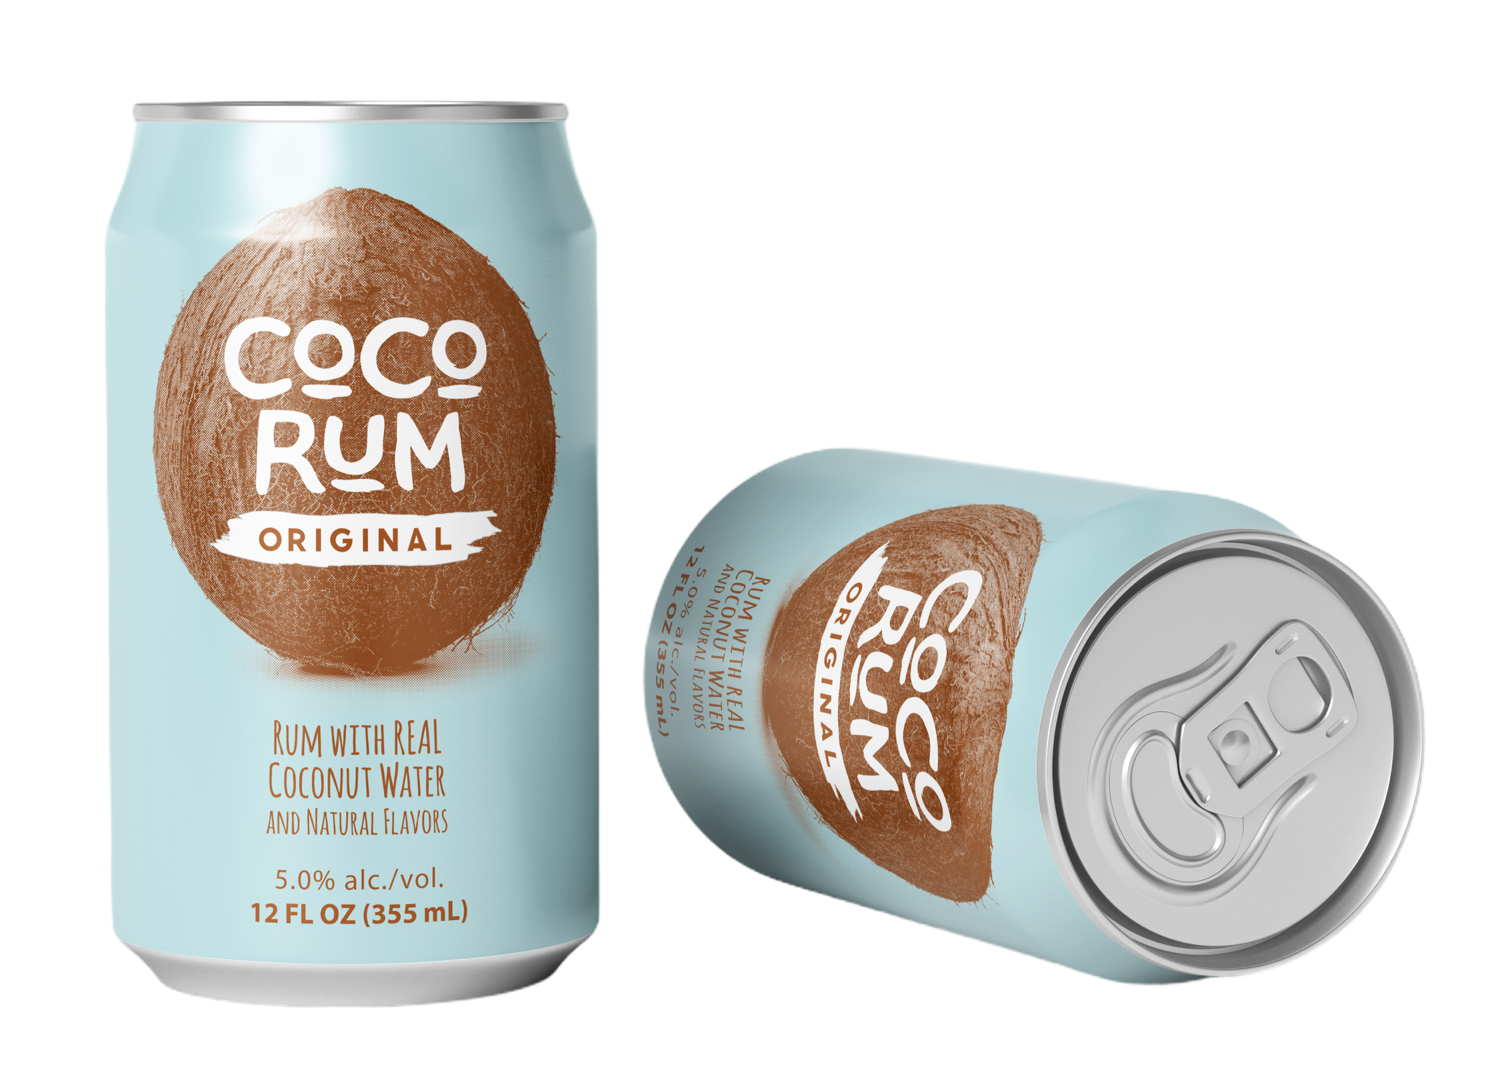 coco rum 2 cans now shadows